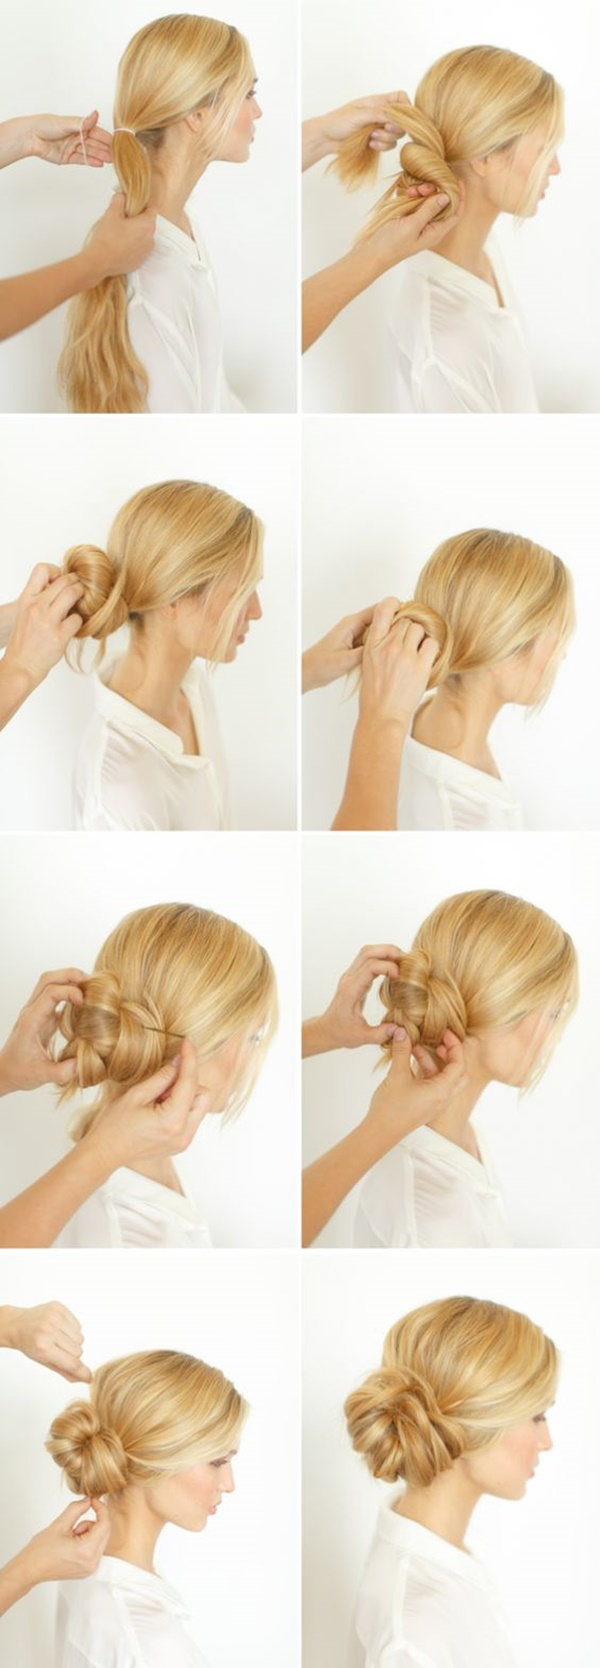 125 Prom Hairstyles for a Queenly Vibe - Reachel